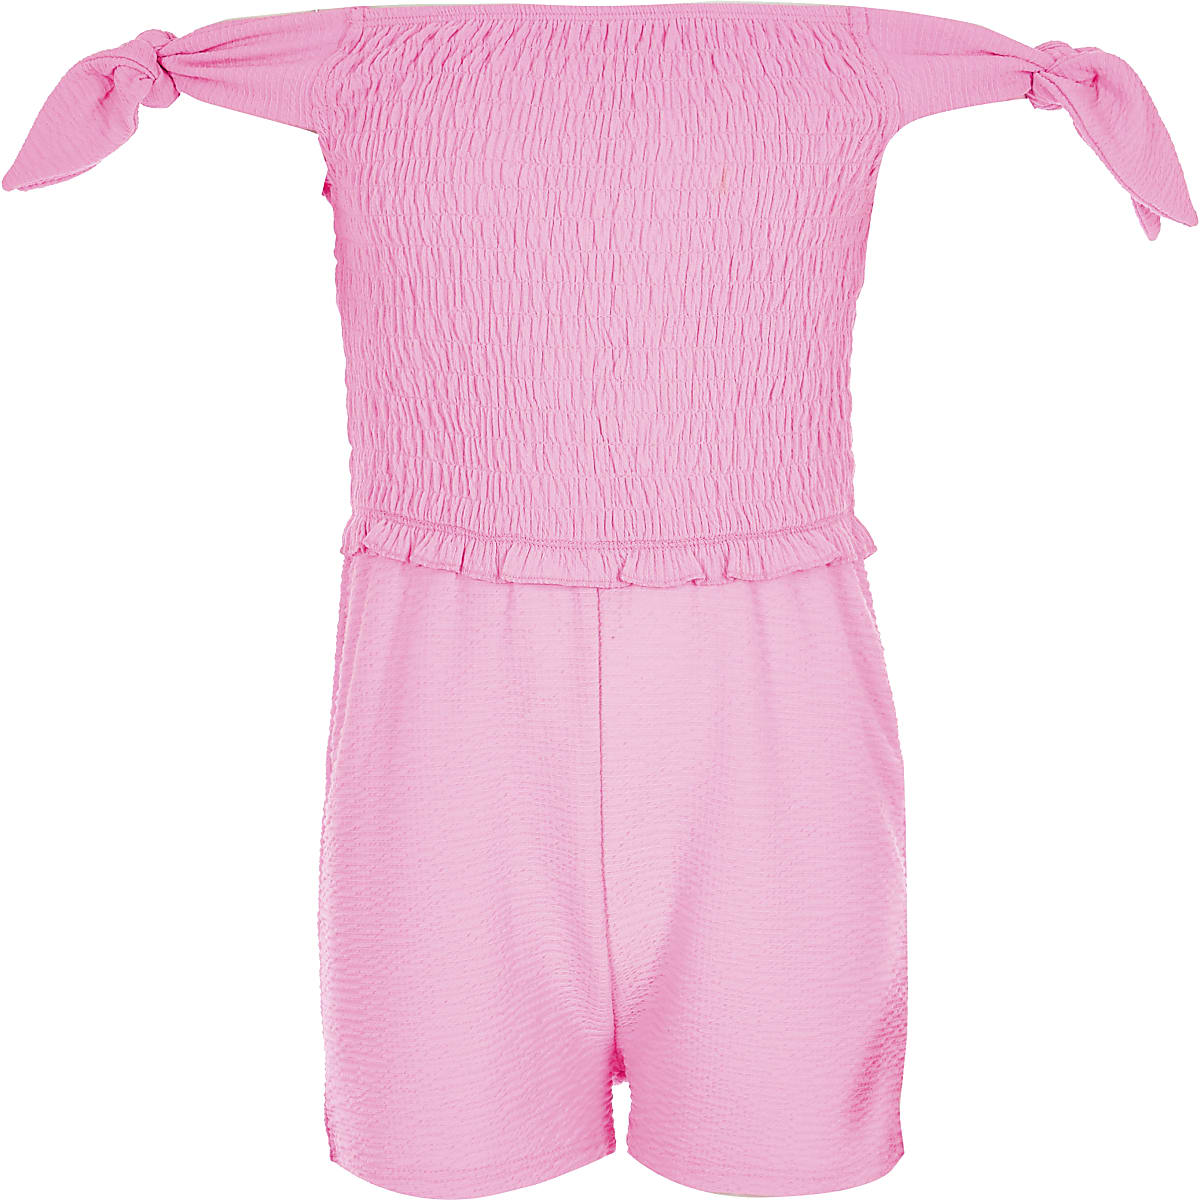 Girls neon pink shirred playsuit